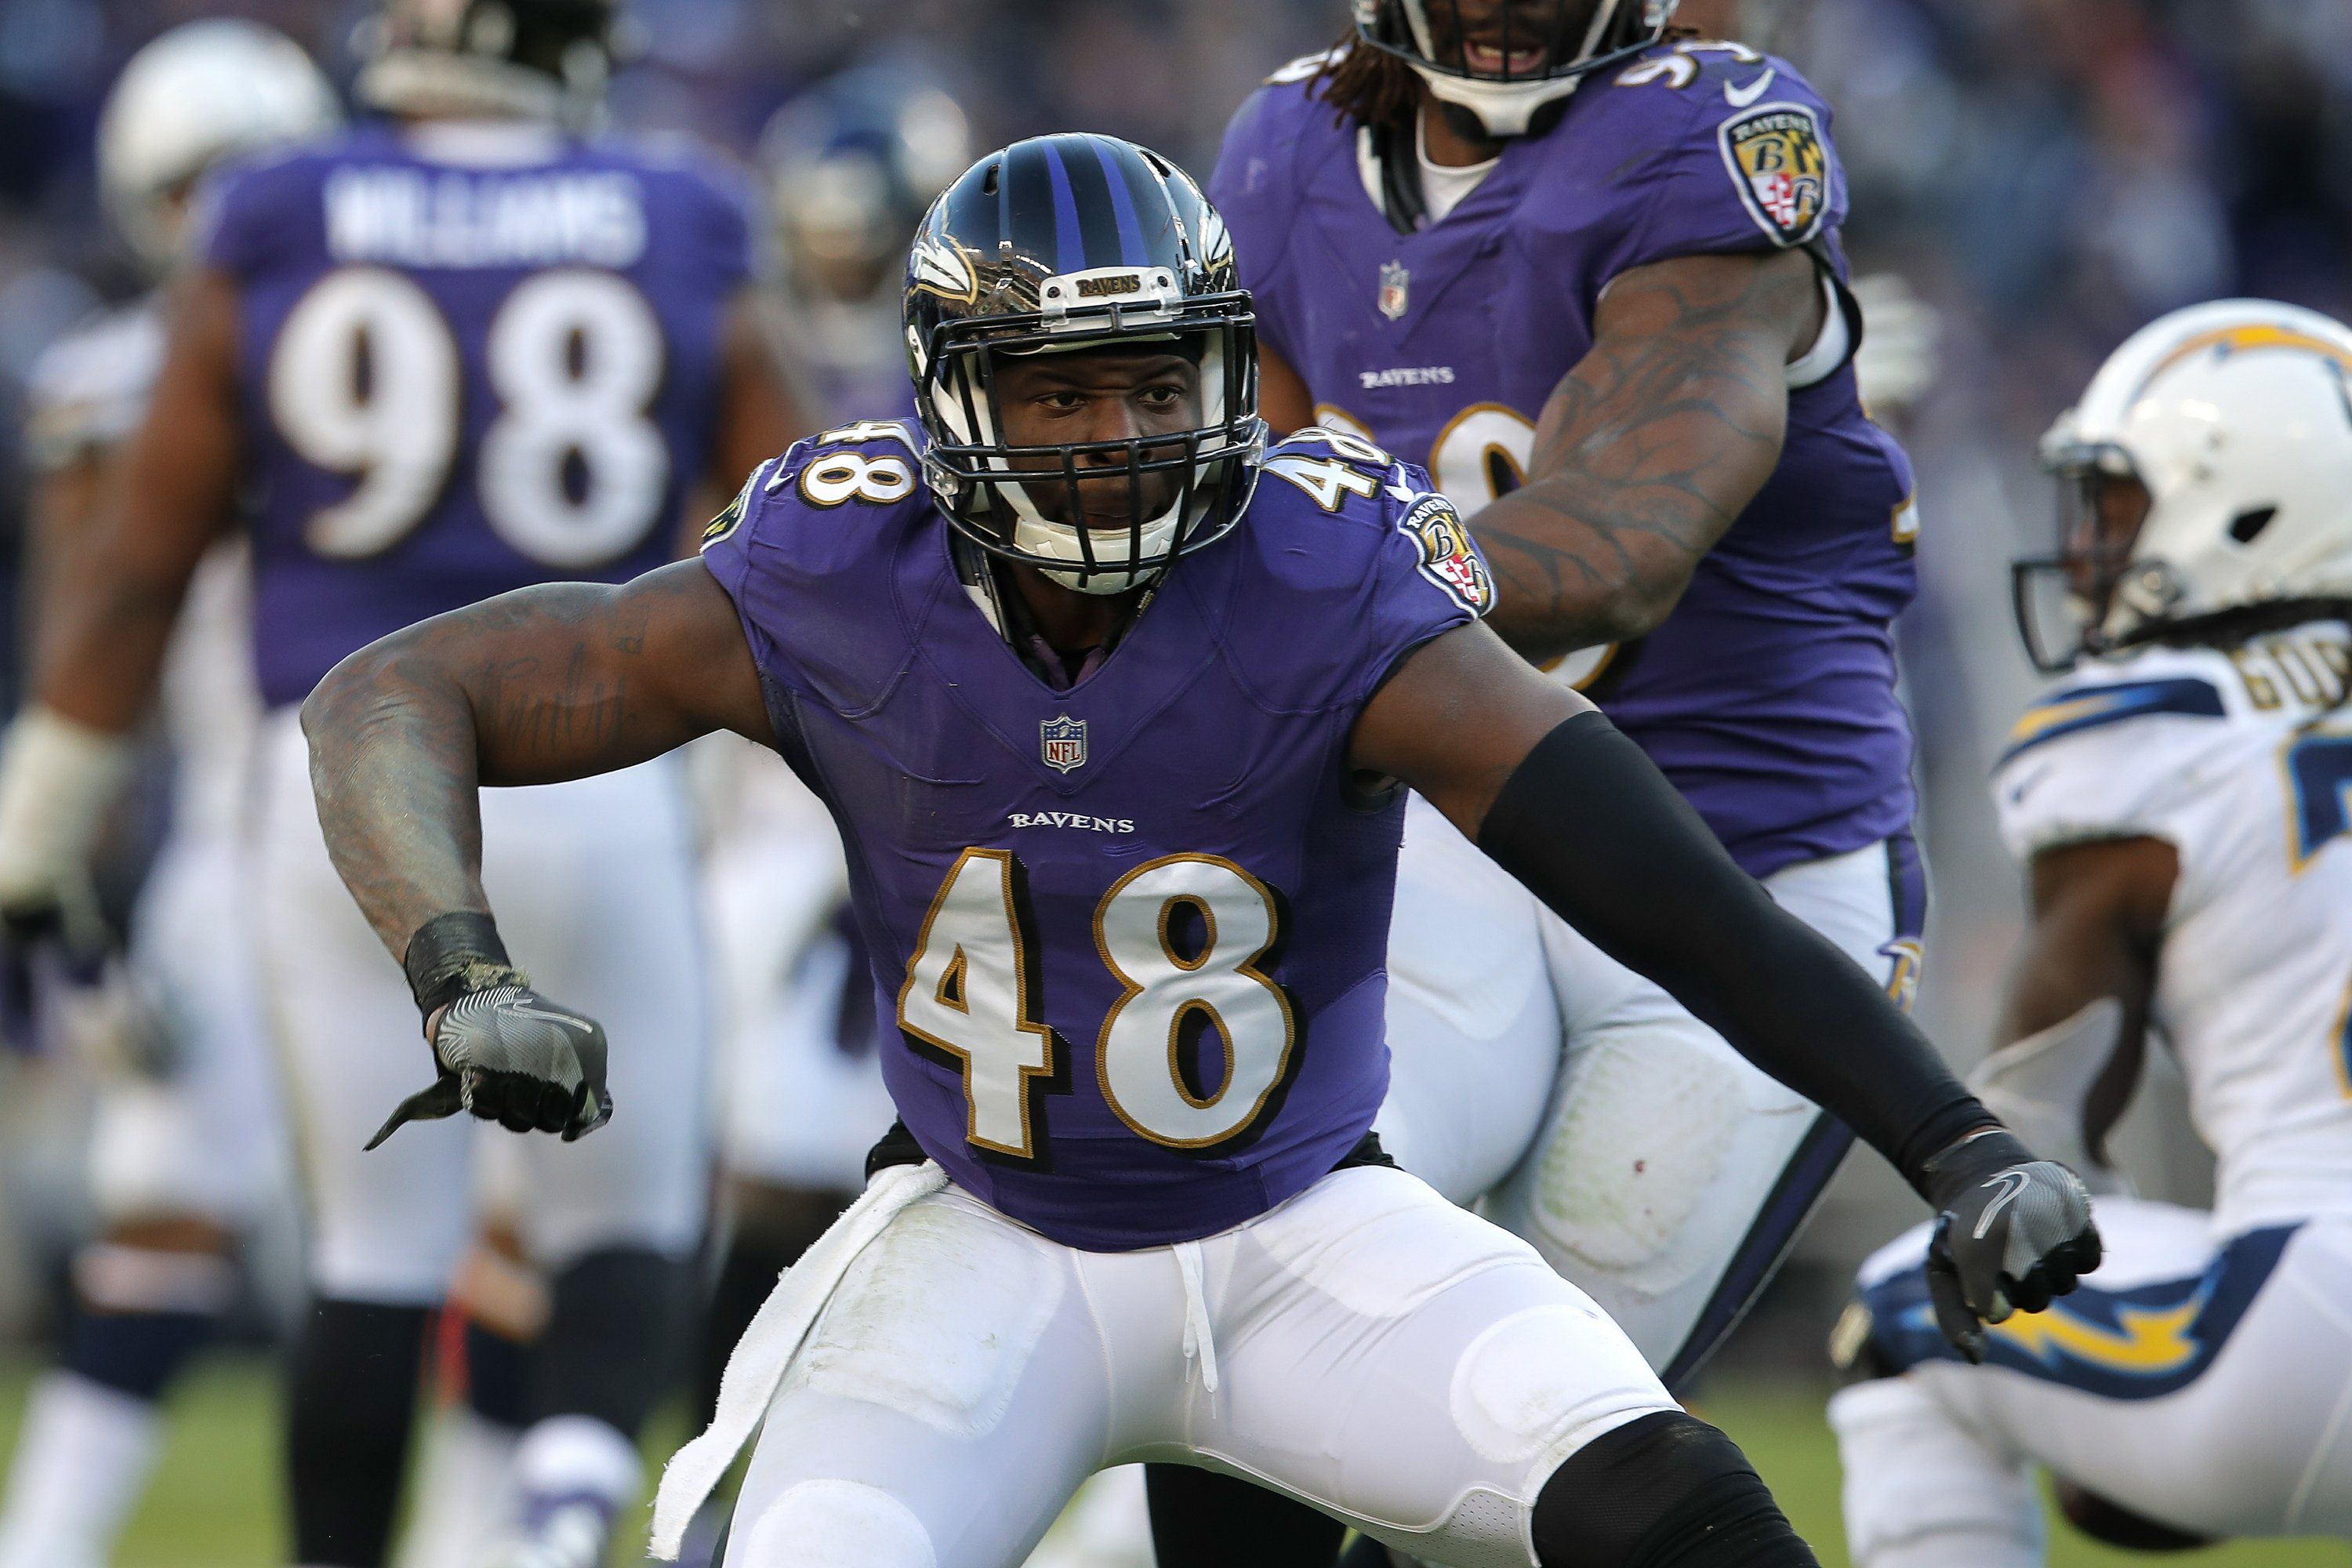 AP source: Jets, LB Patrick Onwuasor agree on 1-year deal